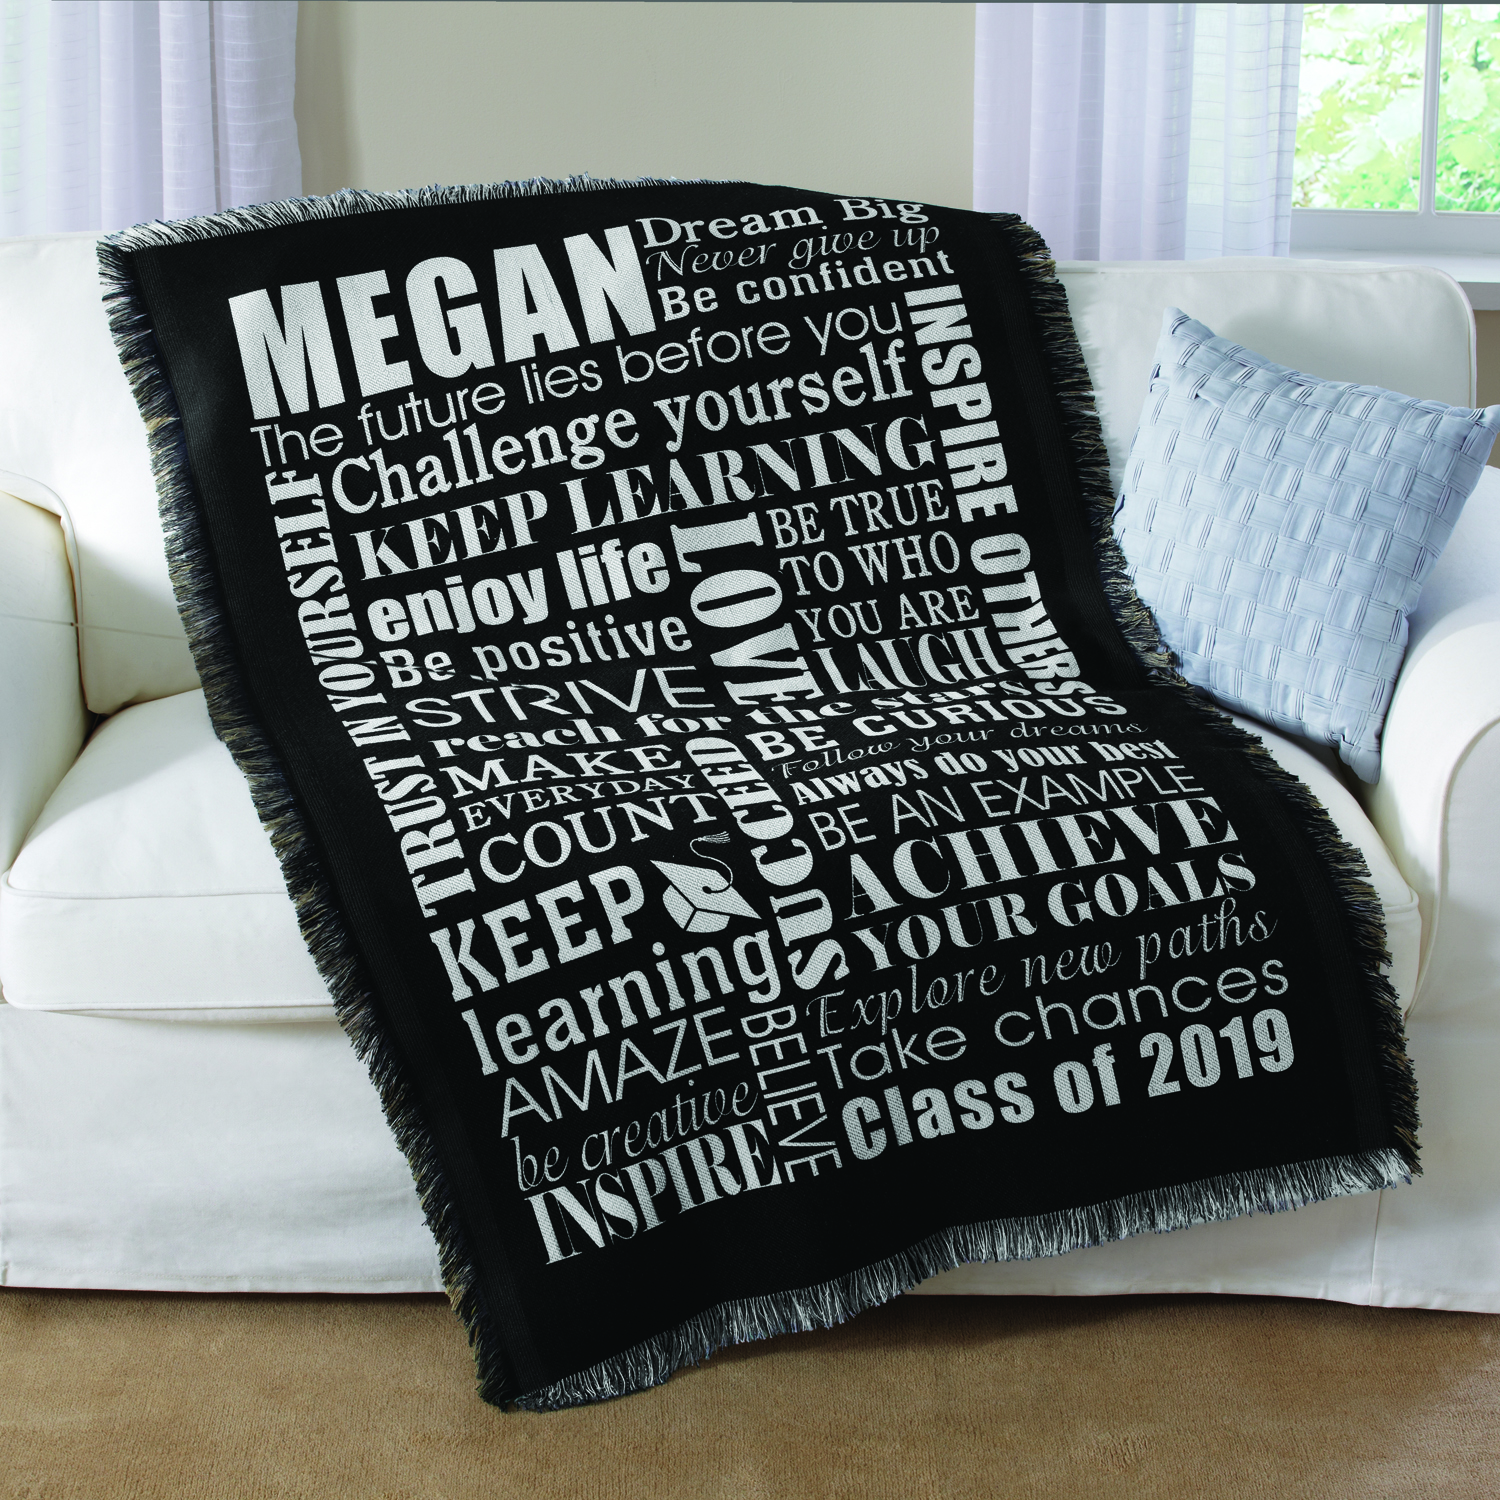 Personalized Dream Big Graduation Throw, Available in 2 Colors